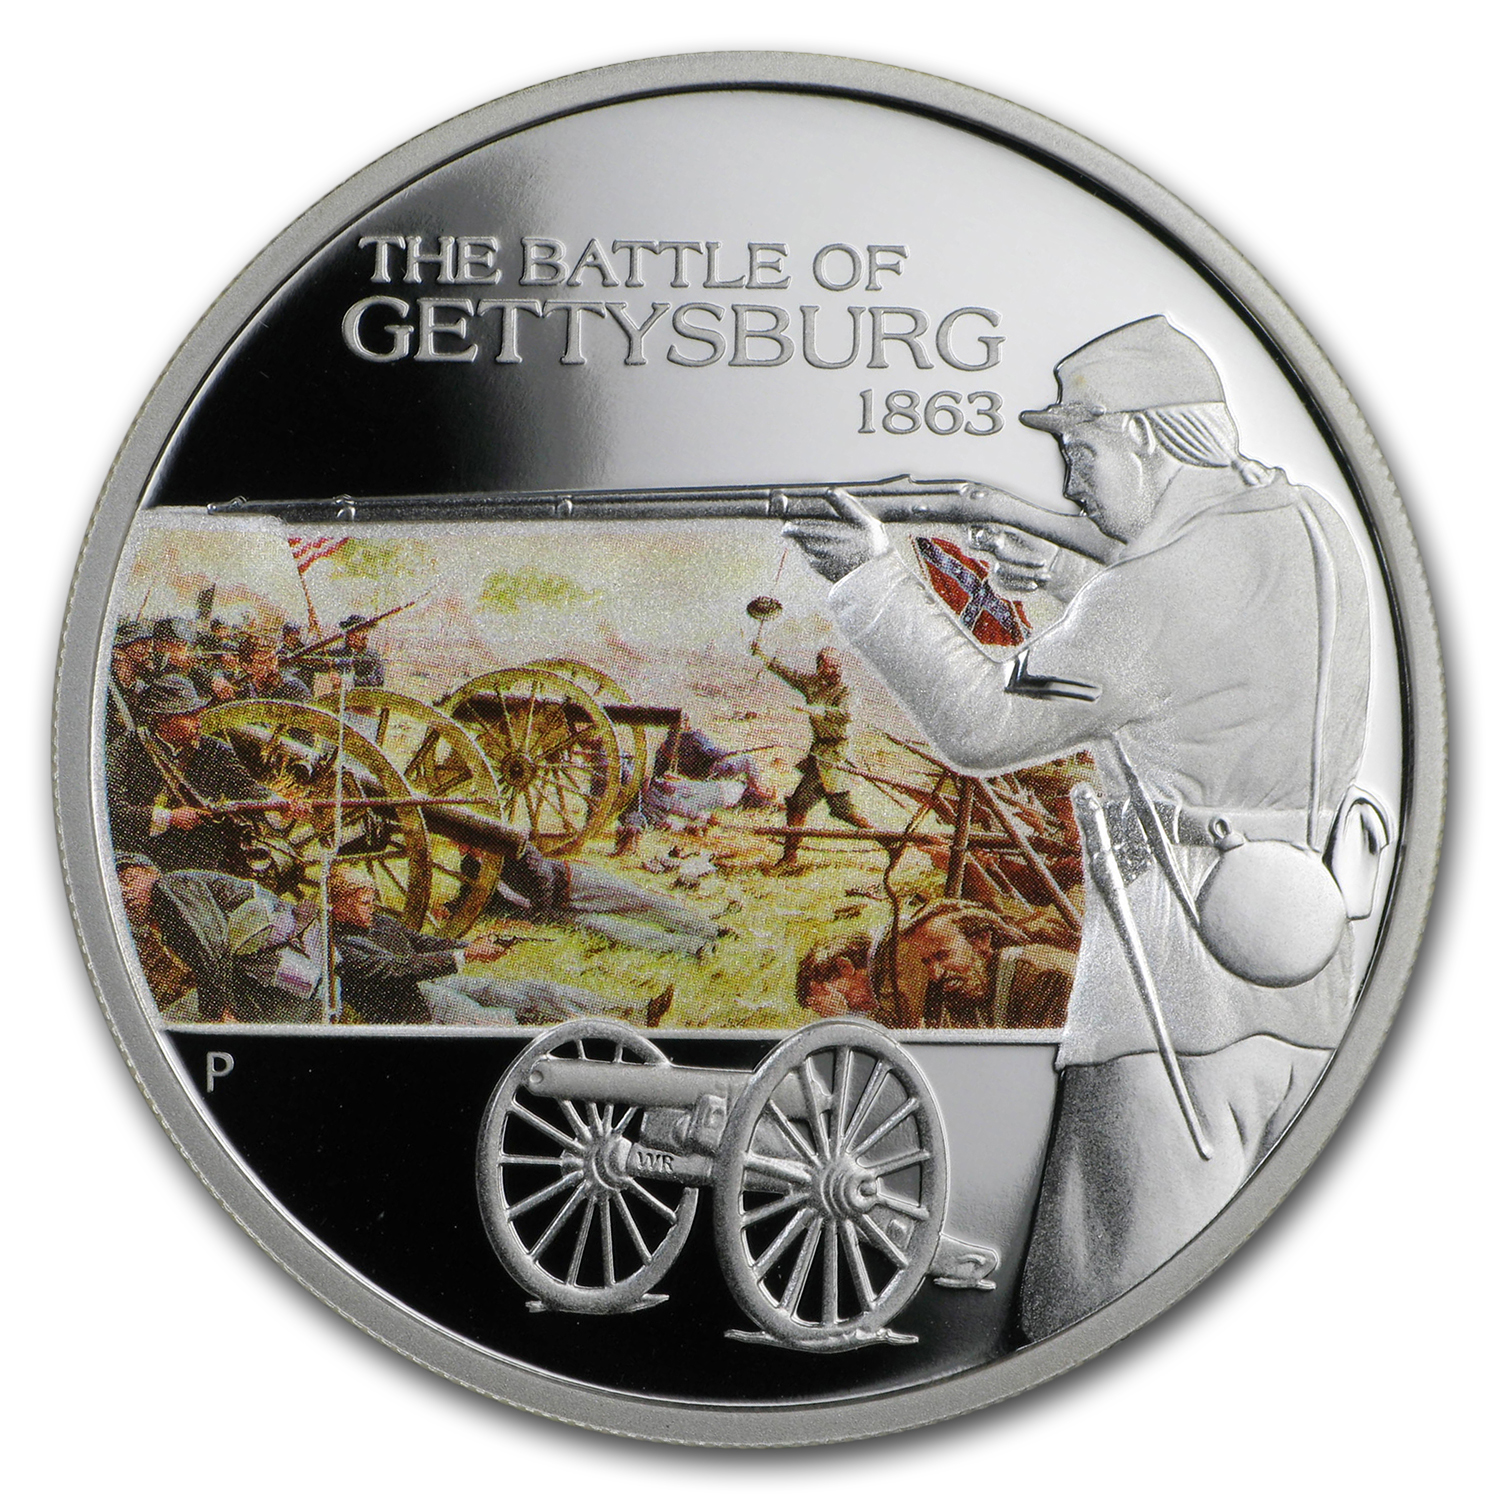 2009 Tuvalu 1 oz Silver Battle of Gettysburg Proof